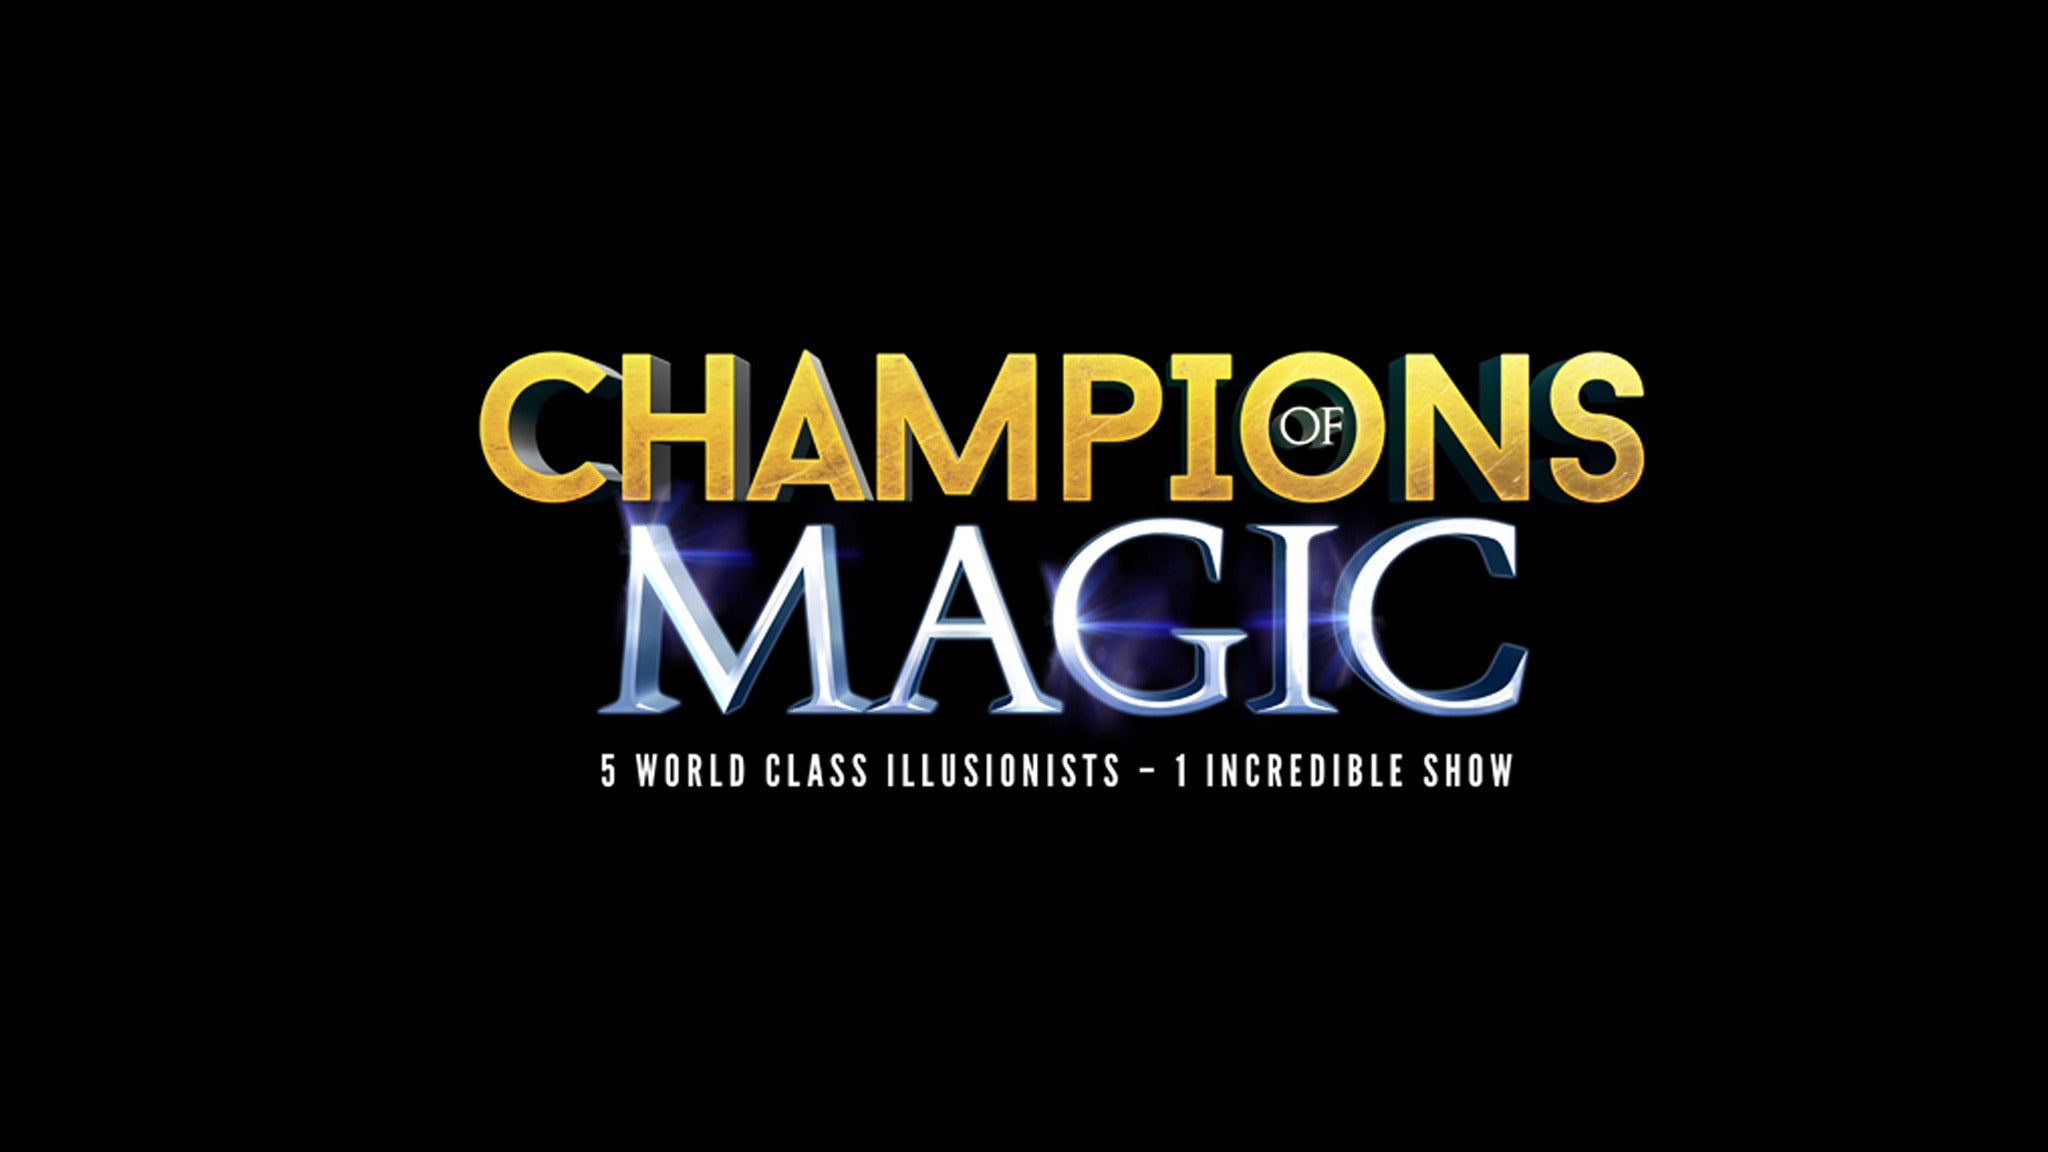 Champions of Magic at Count Basie Center for the Arts